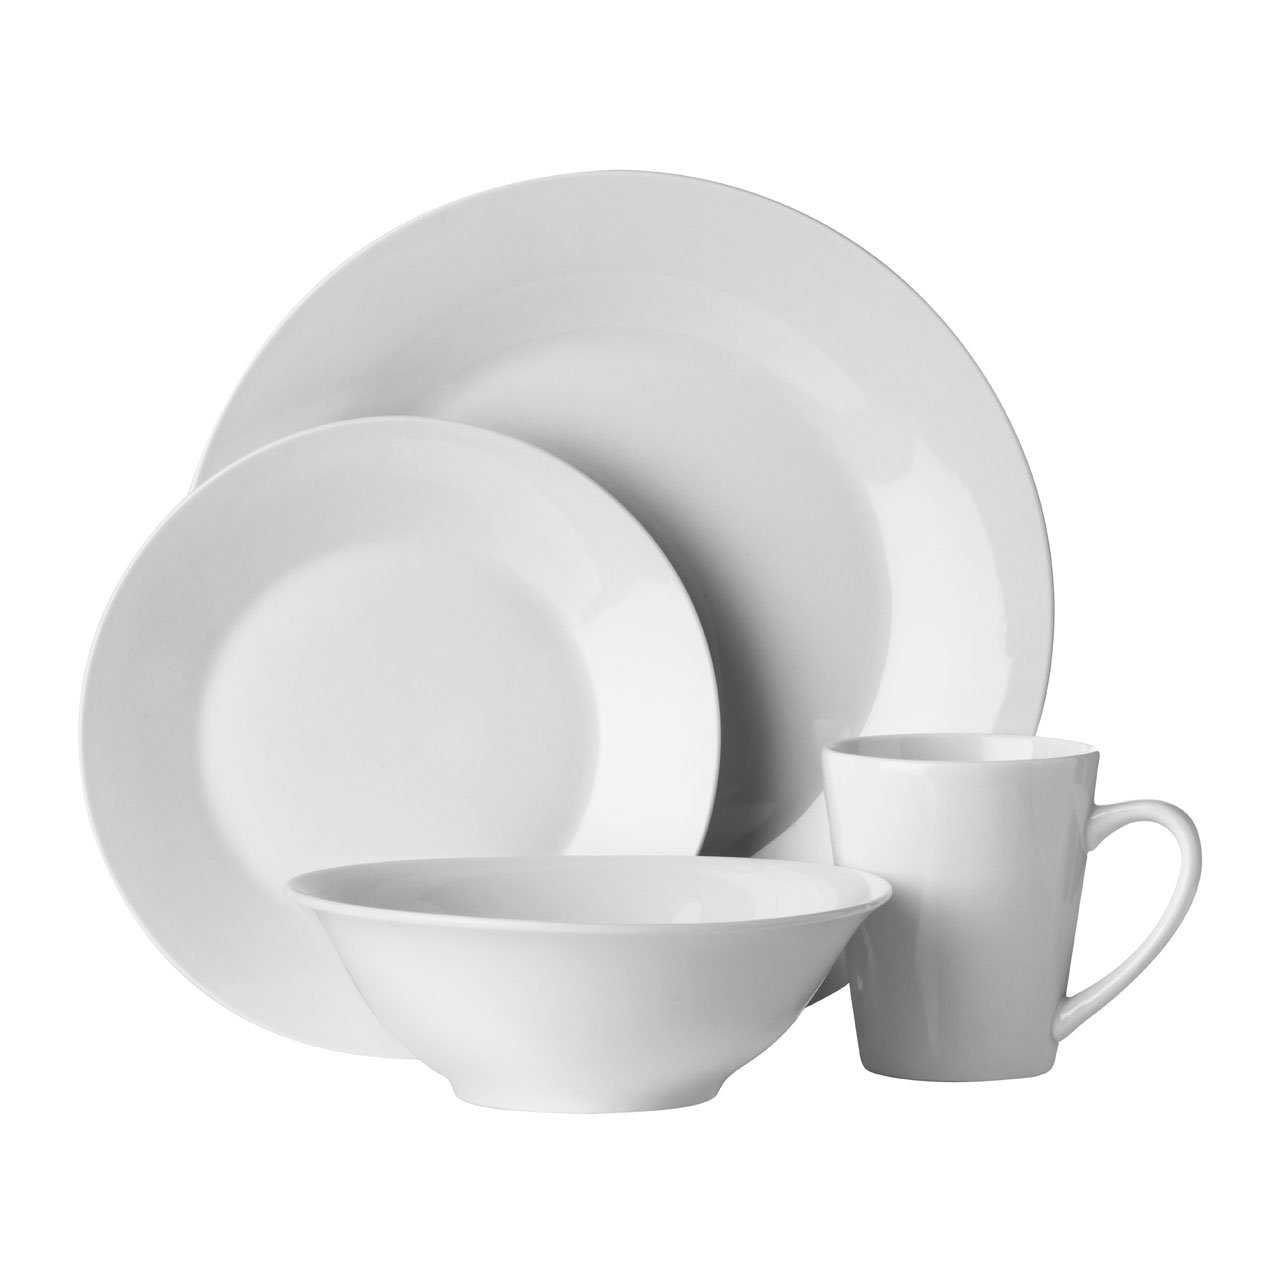 32 Piece White Porcelain Dinner Service Serving Side Plates Mugs ...